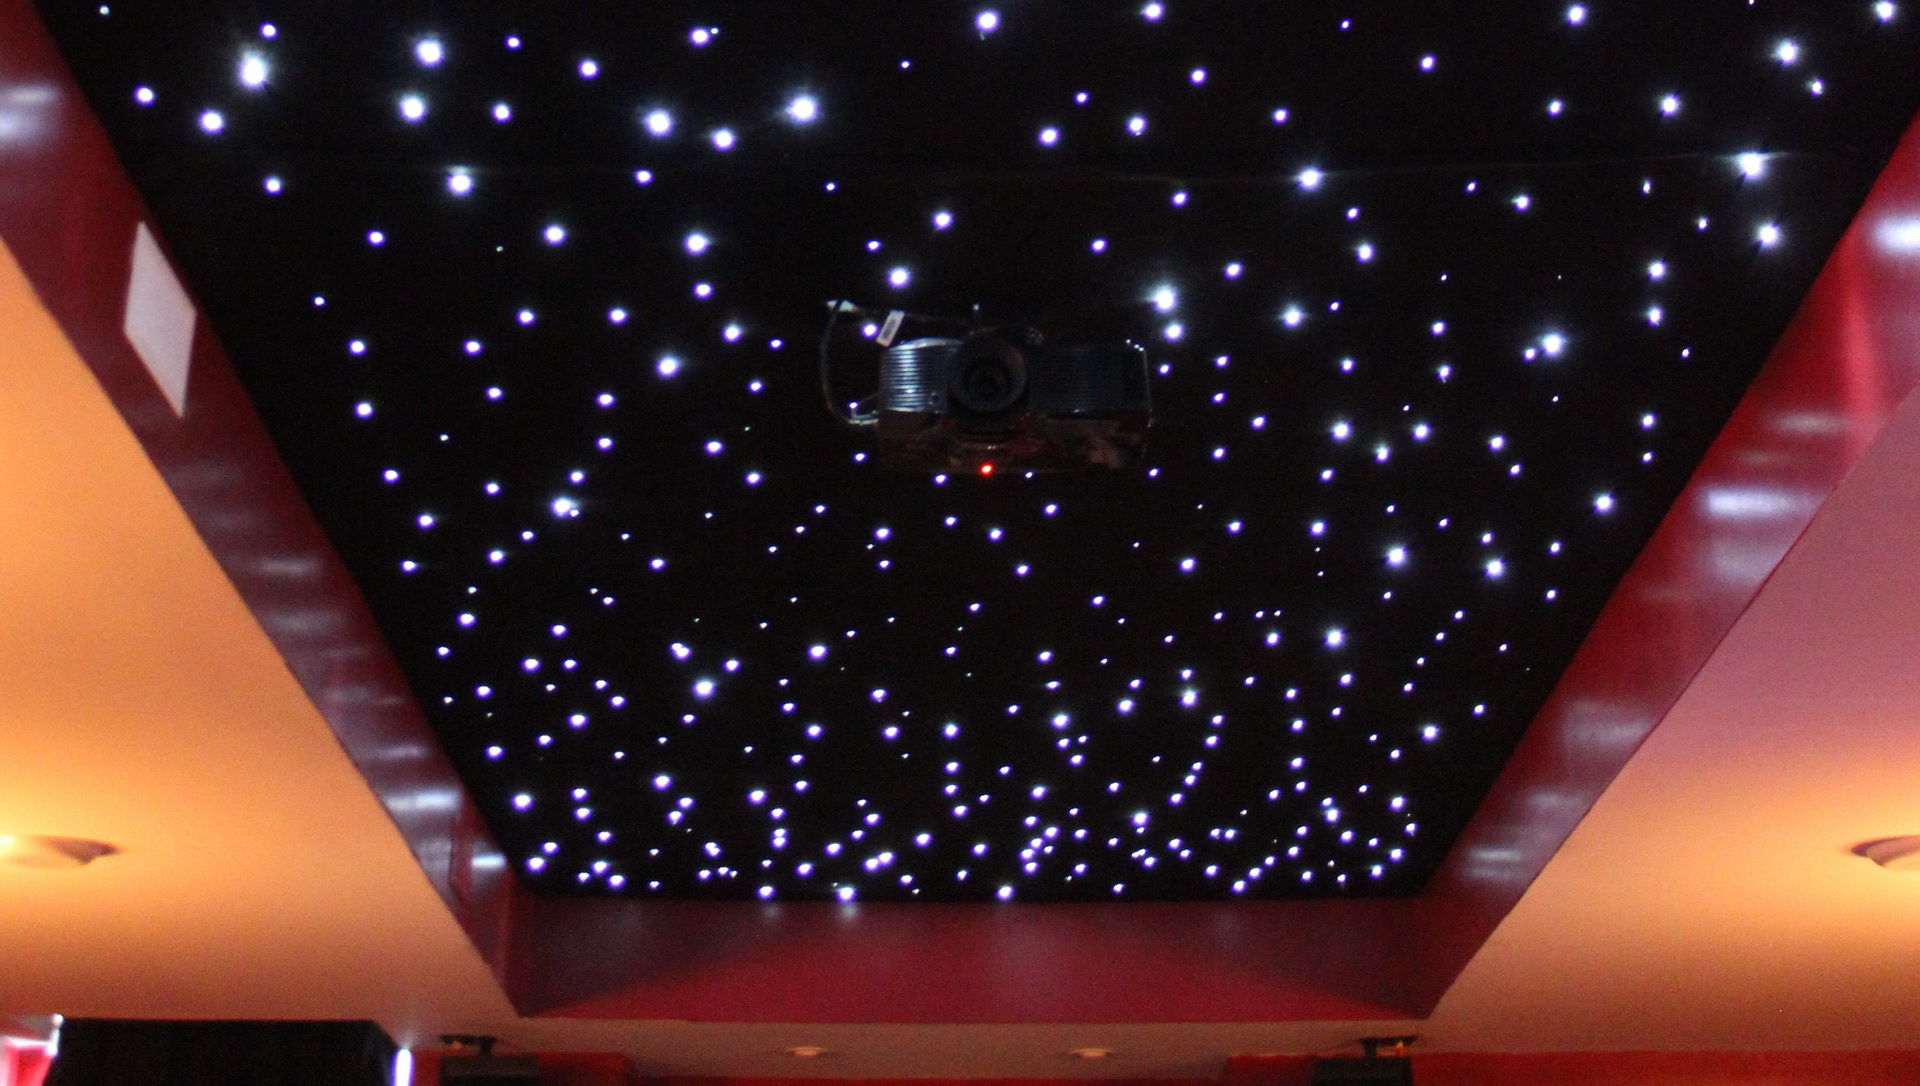 Ceiling Star Lights Fiber Optic Enhance The Space In